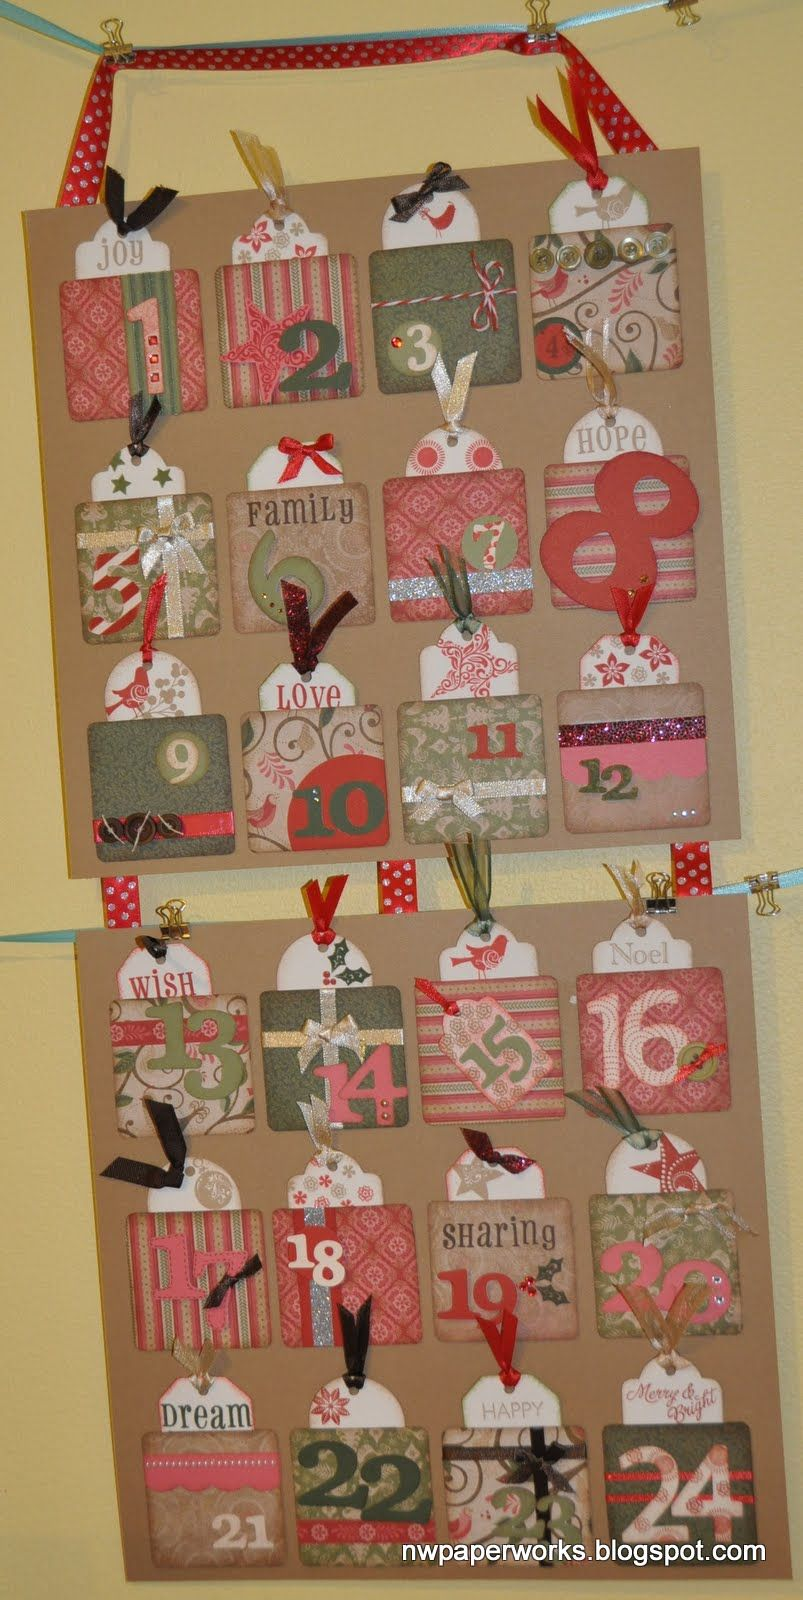 nwpaperworks.blogspot.com  CTMH- Order a kit to create your own!   Activity Advent Calendar- counting down to Christmas with gifts and toys, the pockets are filled with cards labeled with family activities.....  Decorating the tree, hanging the lights, donating to charity, taking a meal to a friend, watching our favorite holiday films, and MAILING OUR HOMEMADE CARDS!!